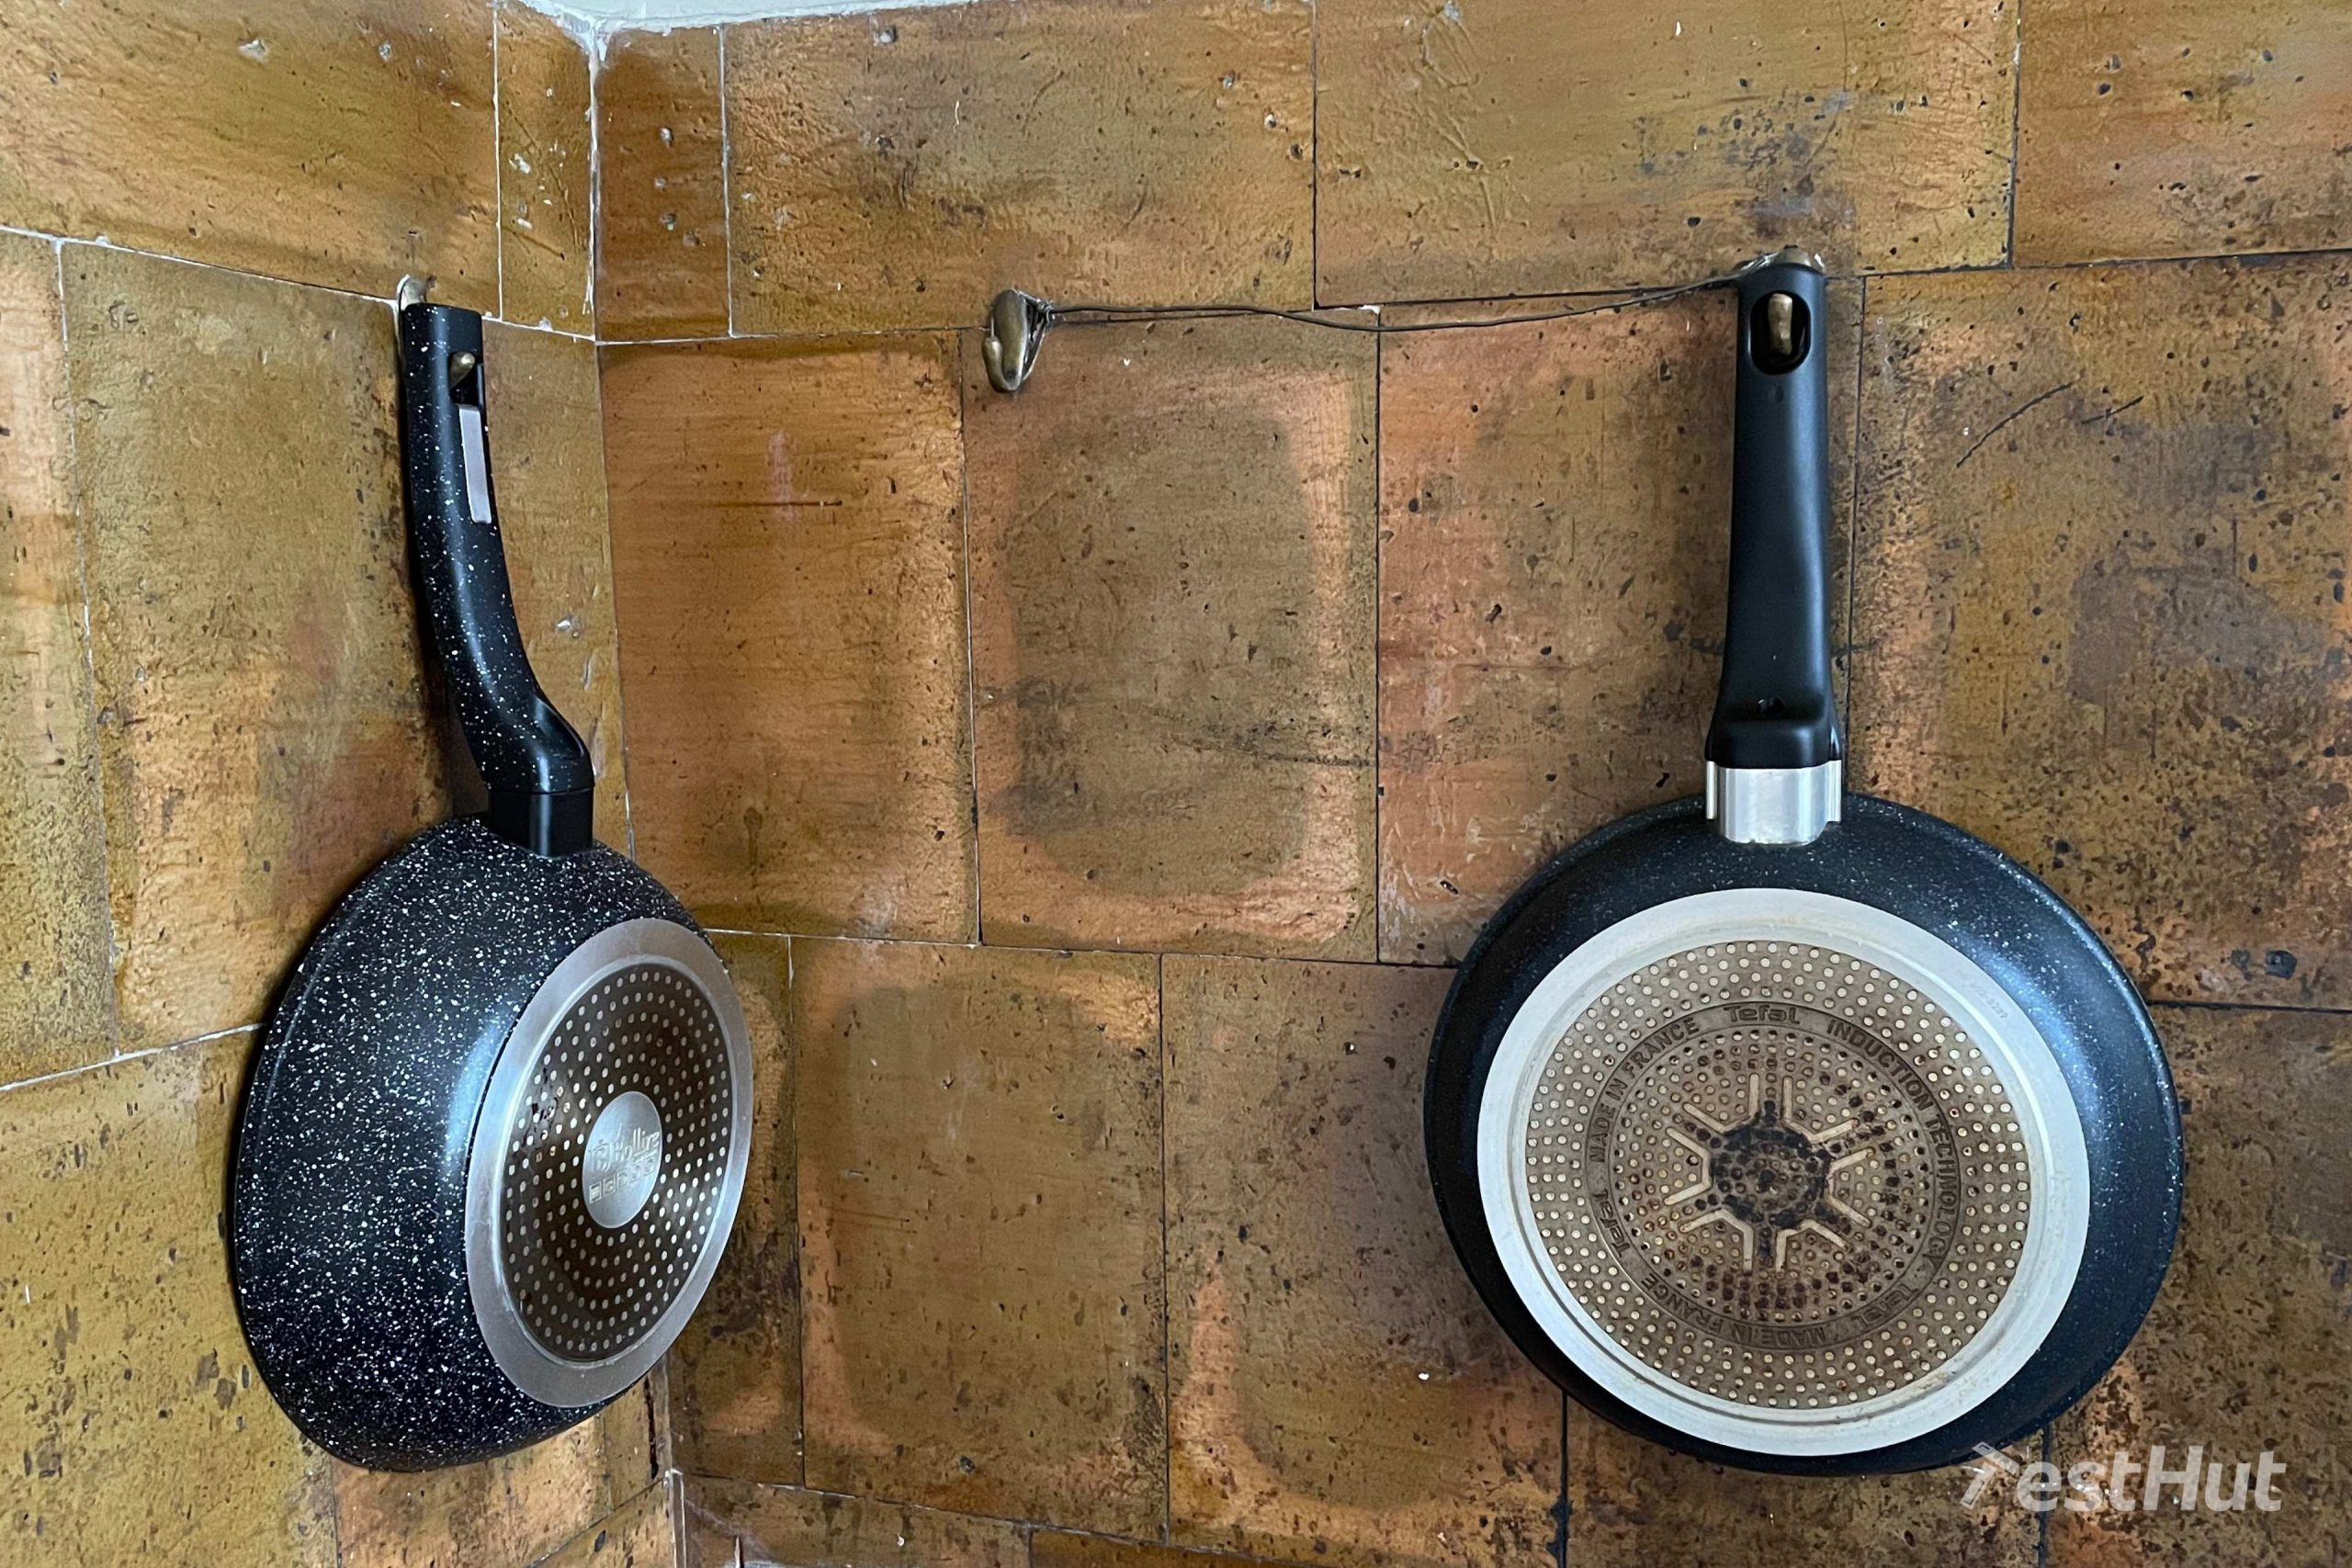 Frying pans hanged on a wall